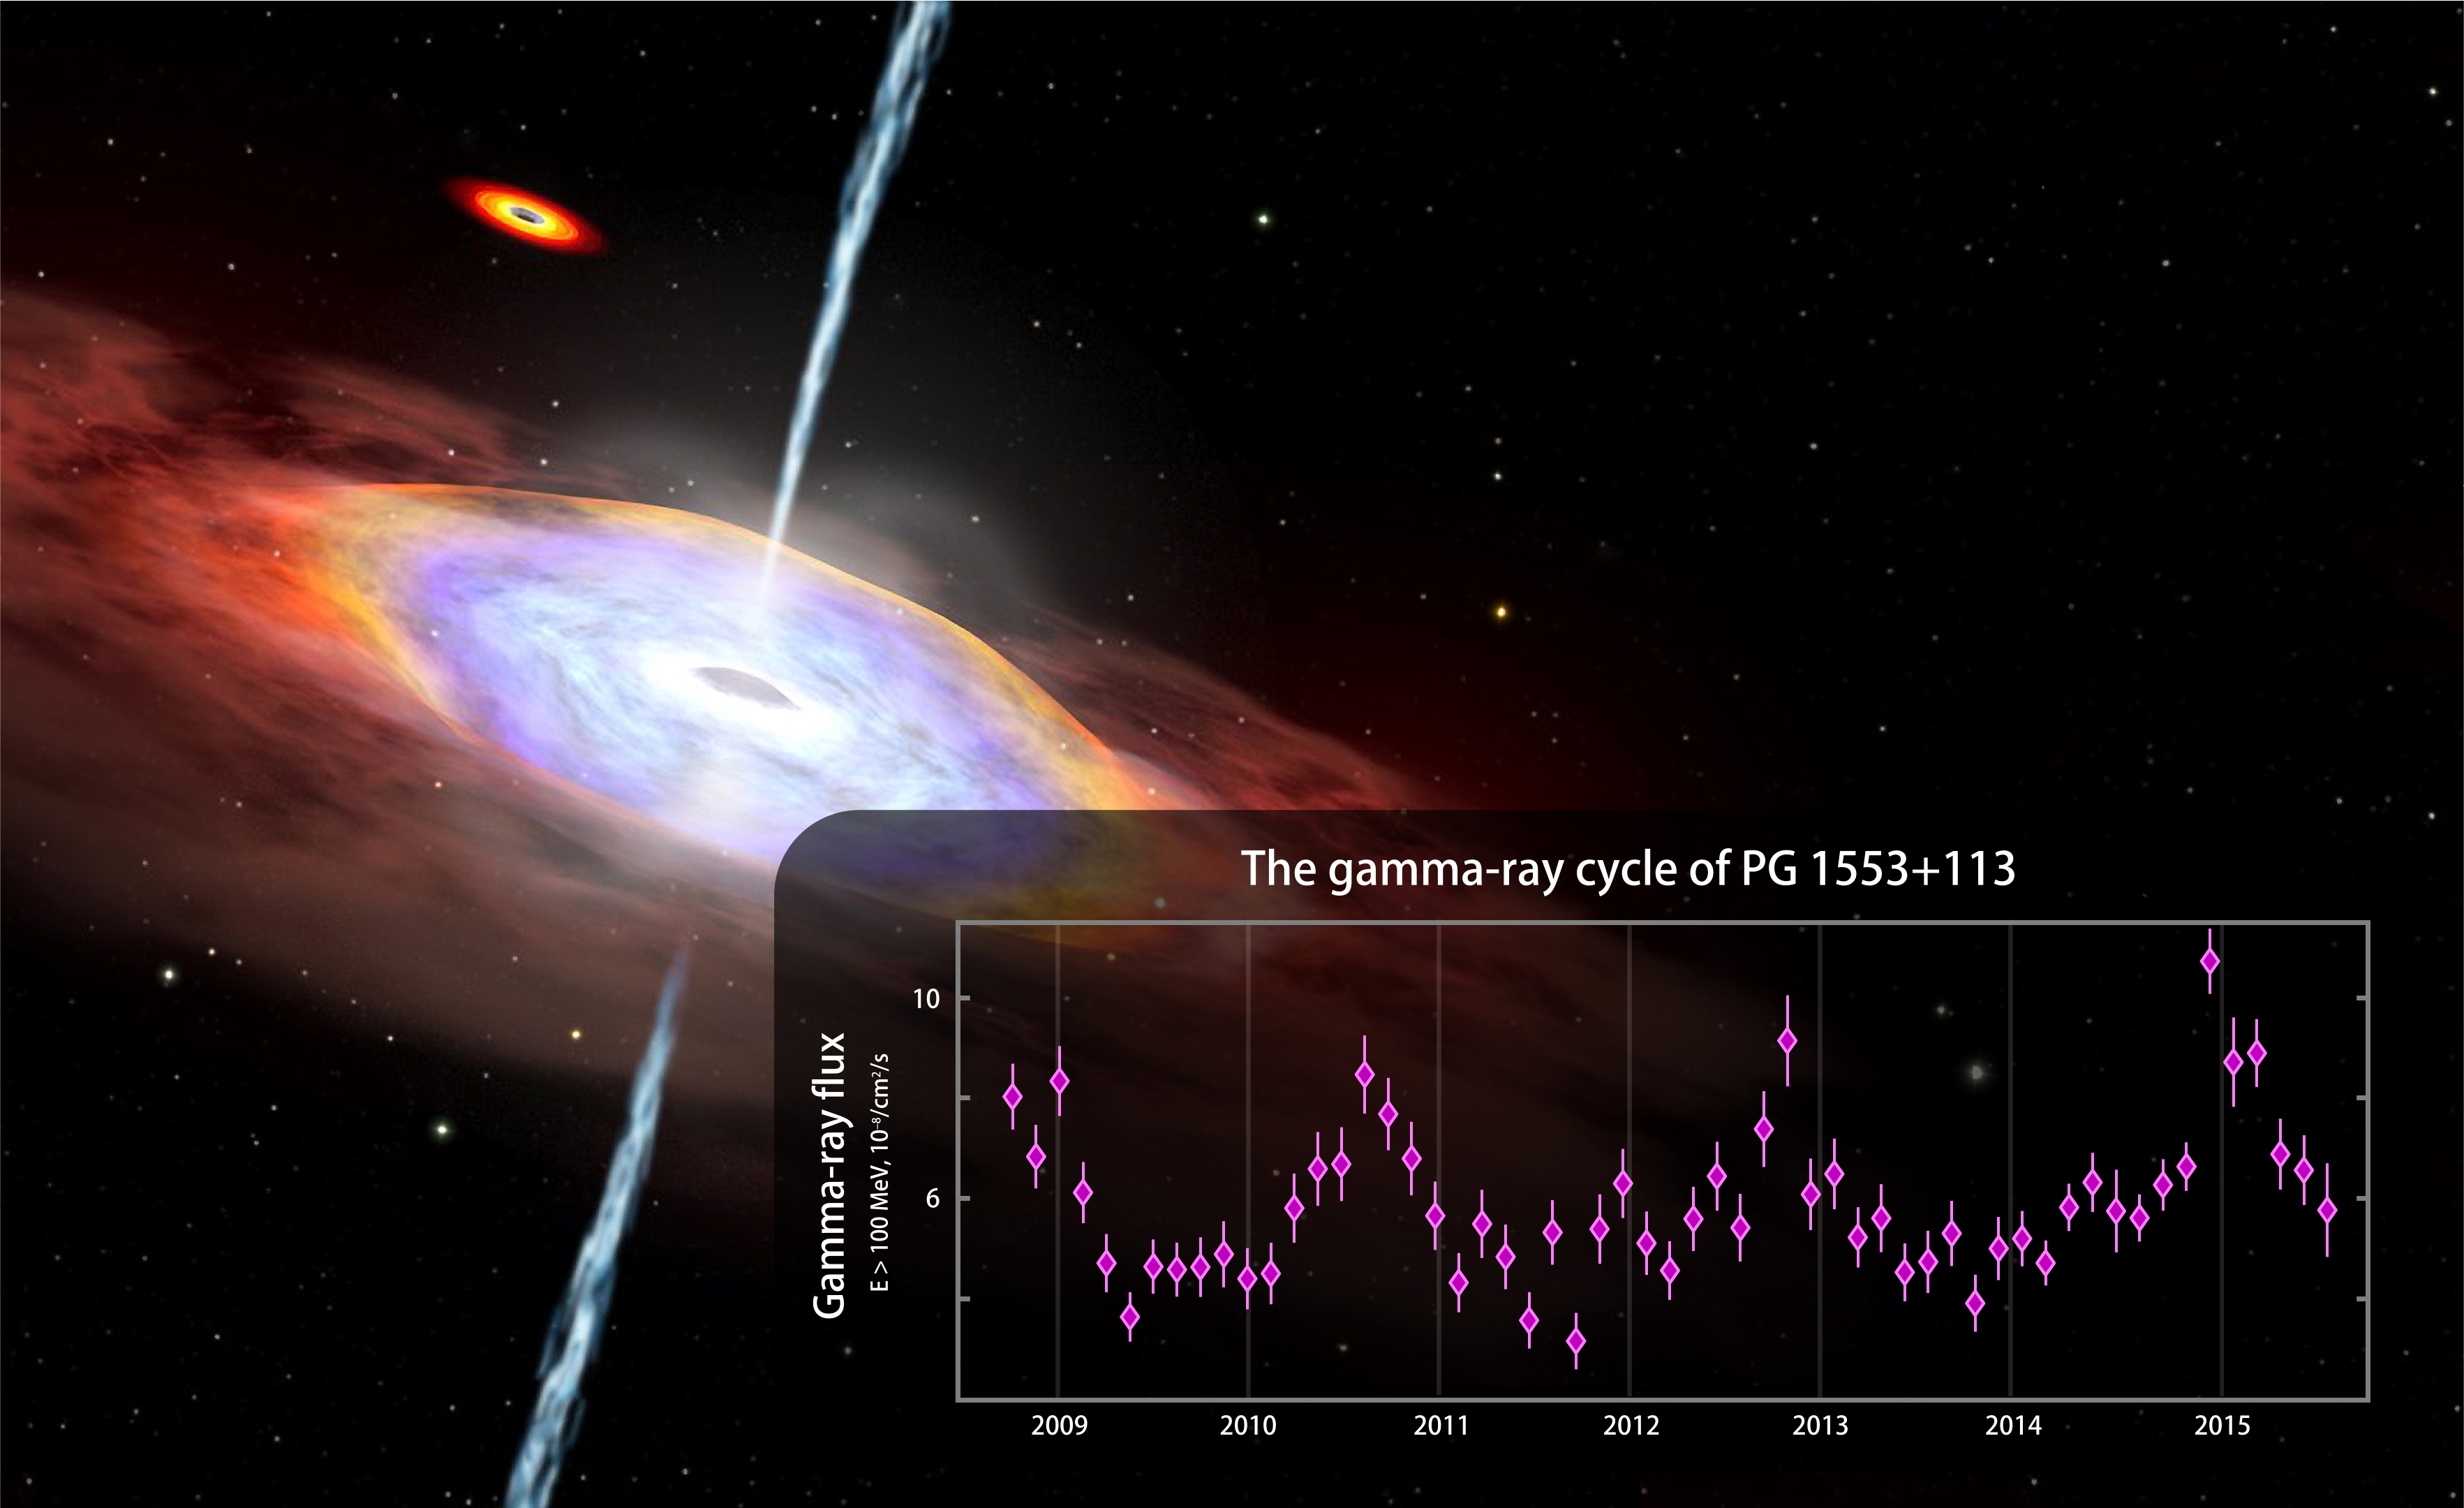 Fermi observations suggest possible years-long cyclic changes in gamma-ray emission from the blazar PG 1553+113. The graph shows Fermi Large Area Telescope data from August 2008 to July 2015 for gamma rays with energies above 100 million electron volts (MeV). For comparison, visible light ranges between 2 and 3 electron volts. Vertical lines on data points are error bars. Background: One possible explanation for the gamma-ray cycle is an oscillation of the jet produced by the gravitational pull of a second massive black hole, seen at top left in this artist's rendering.